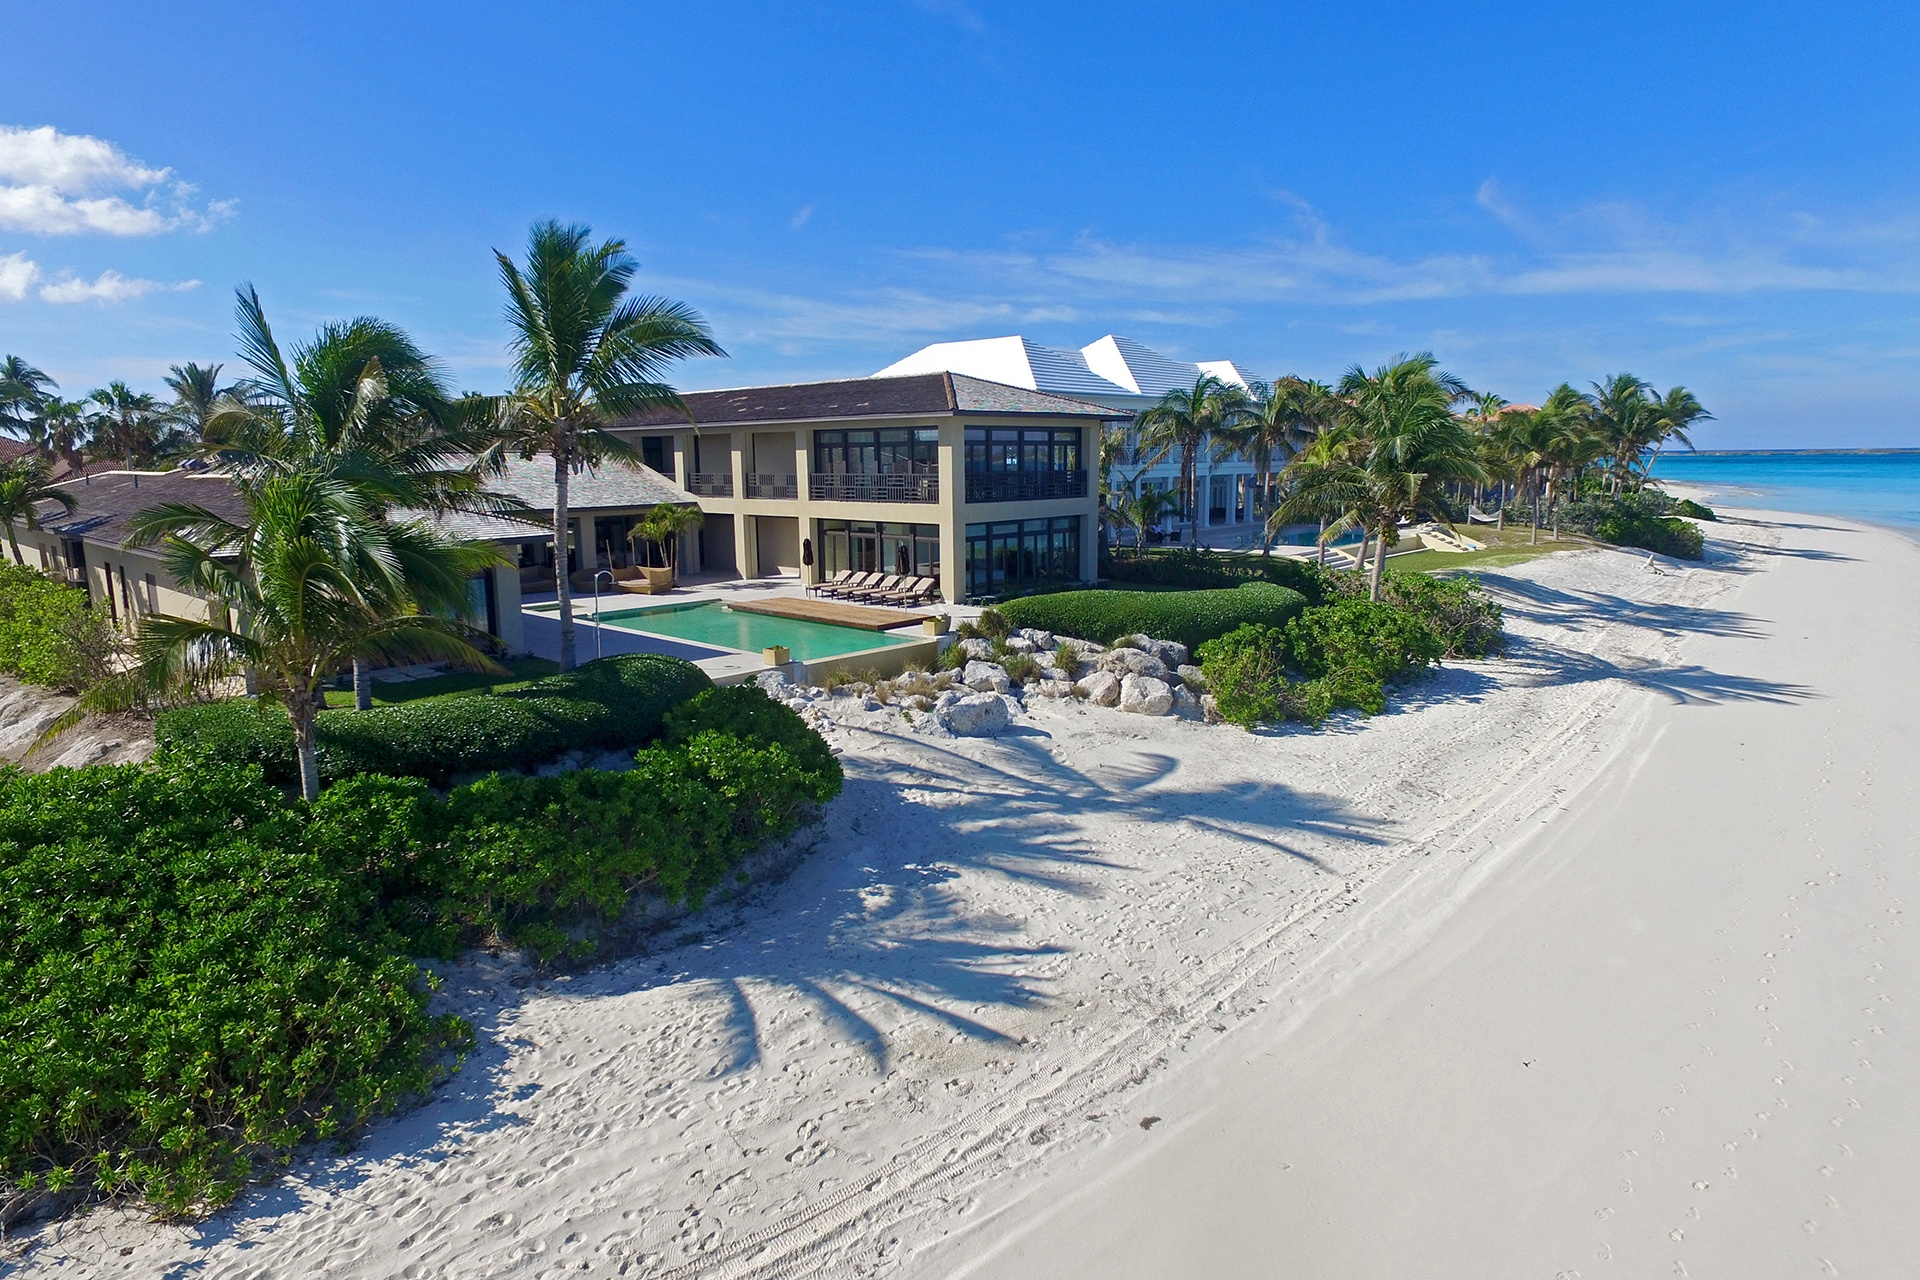 The incomparable white sand of the Bahamas form a stunning private beach on Paradise Island.